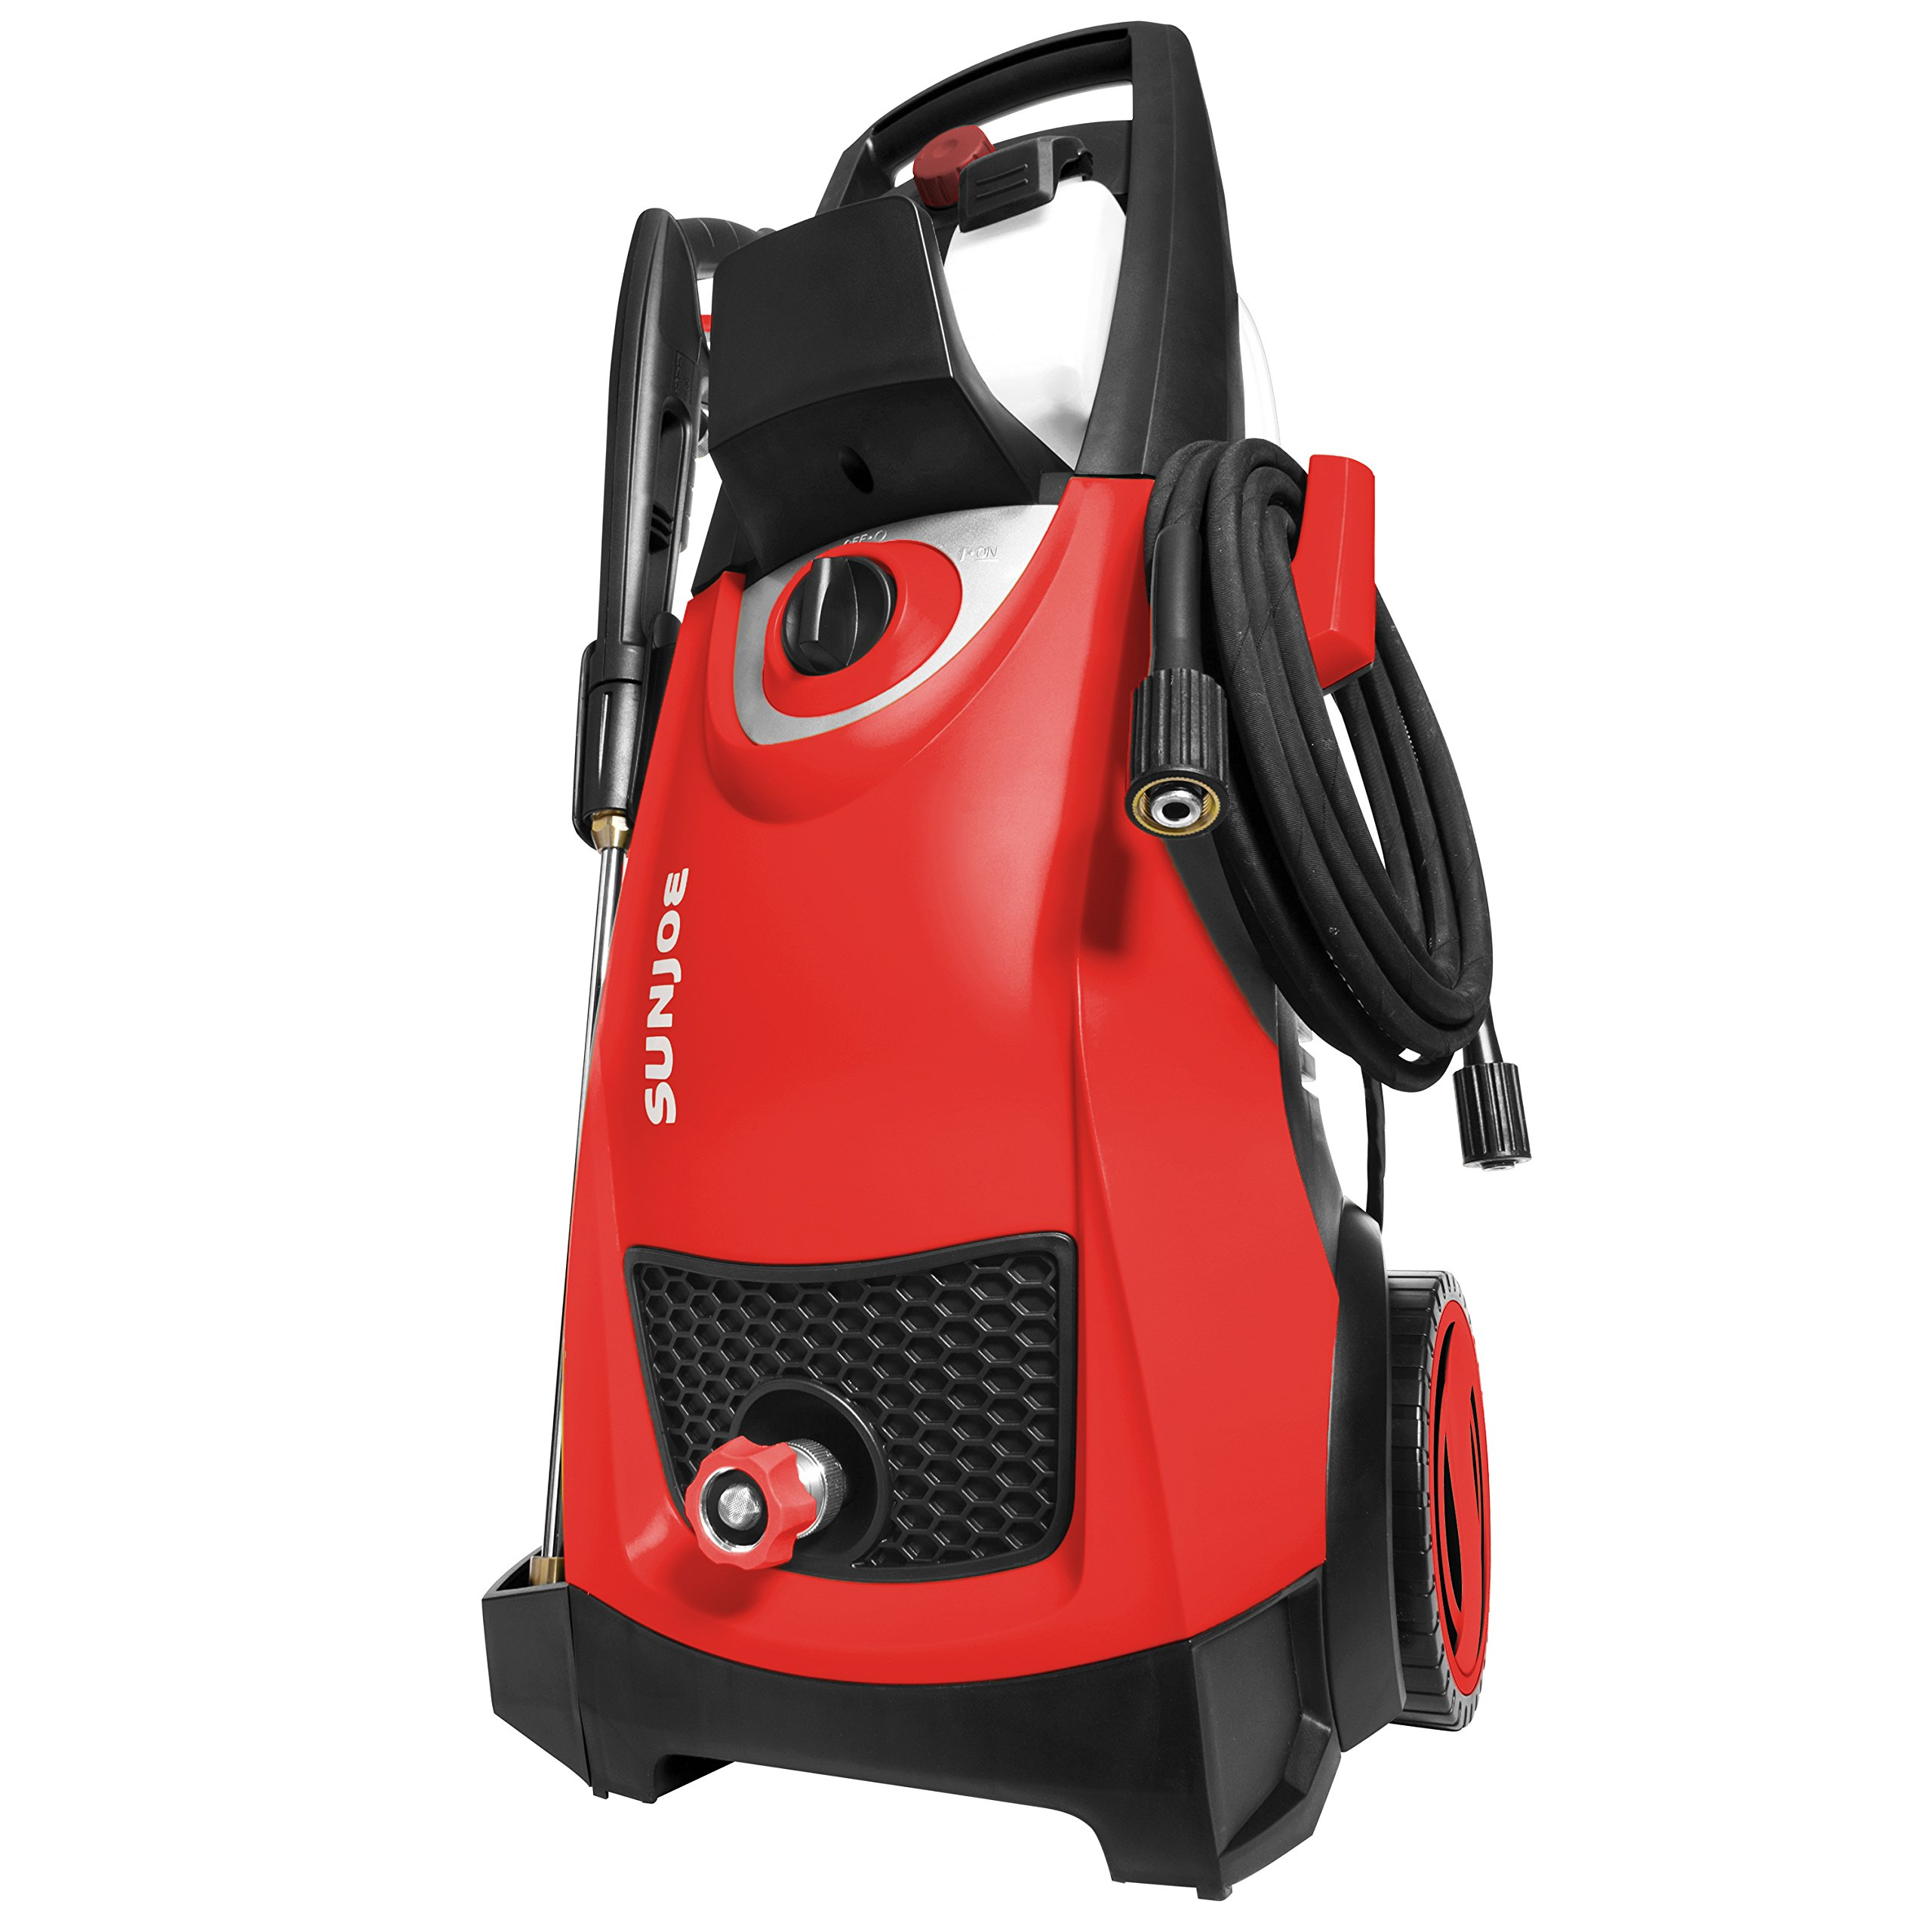 Sun Joe SPX3000-RED Pressure Joe 2030 PSI 1.76 GPM 14.5-Amp Electric Pressure Washer, Red